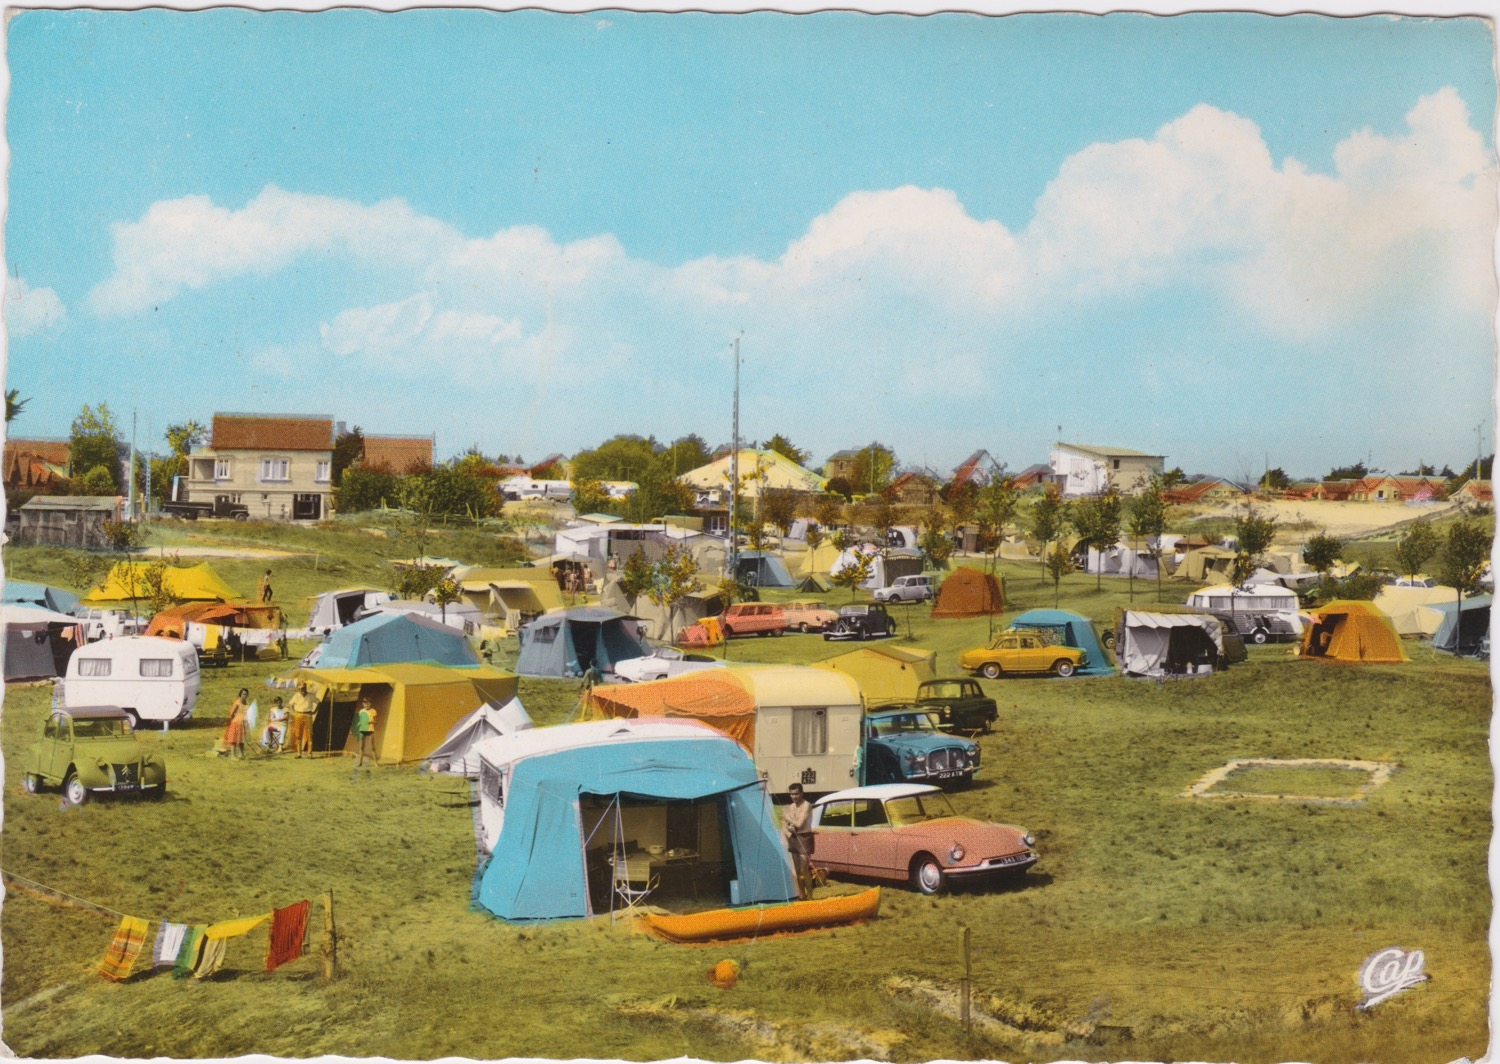 1965 St Martin Sites Camping © collection Jean Claude Ferret